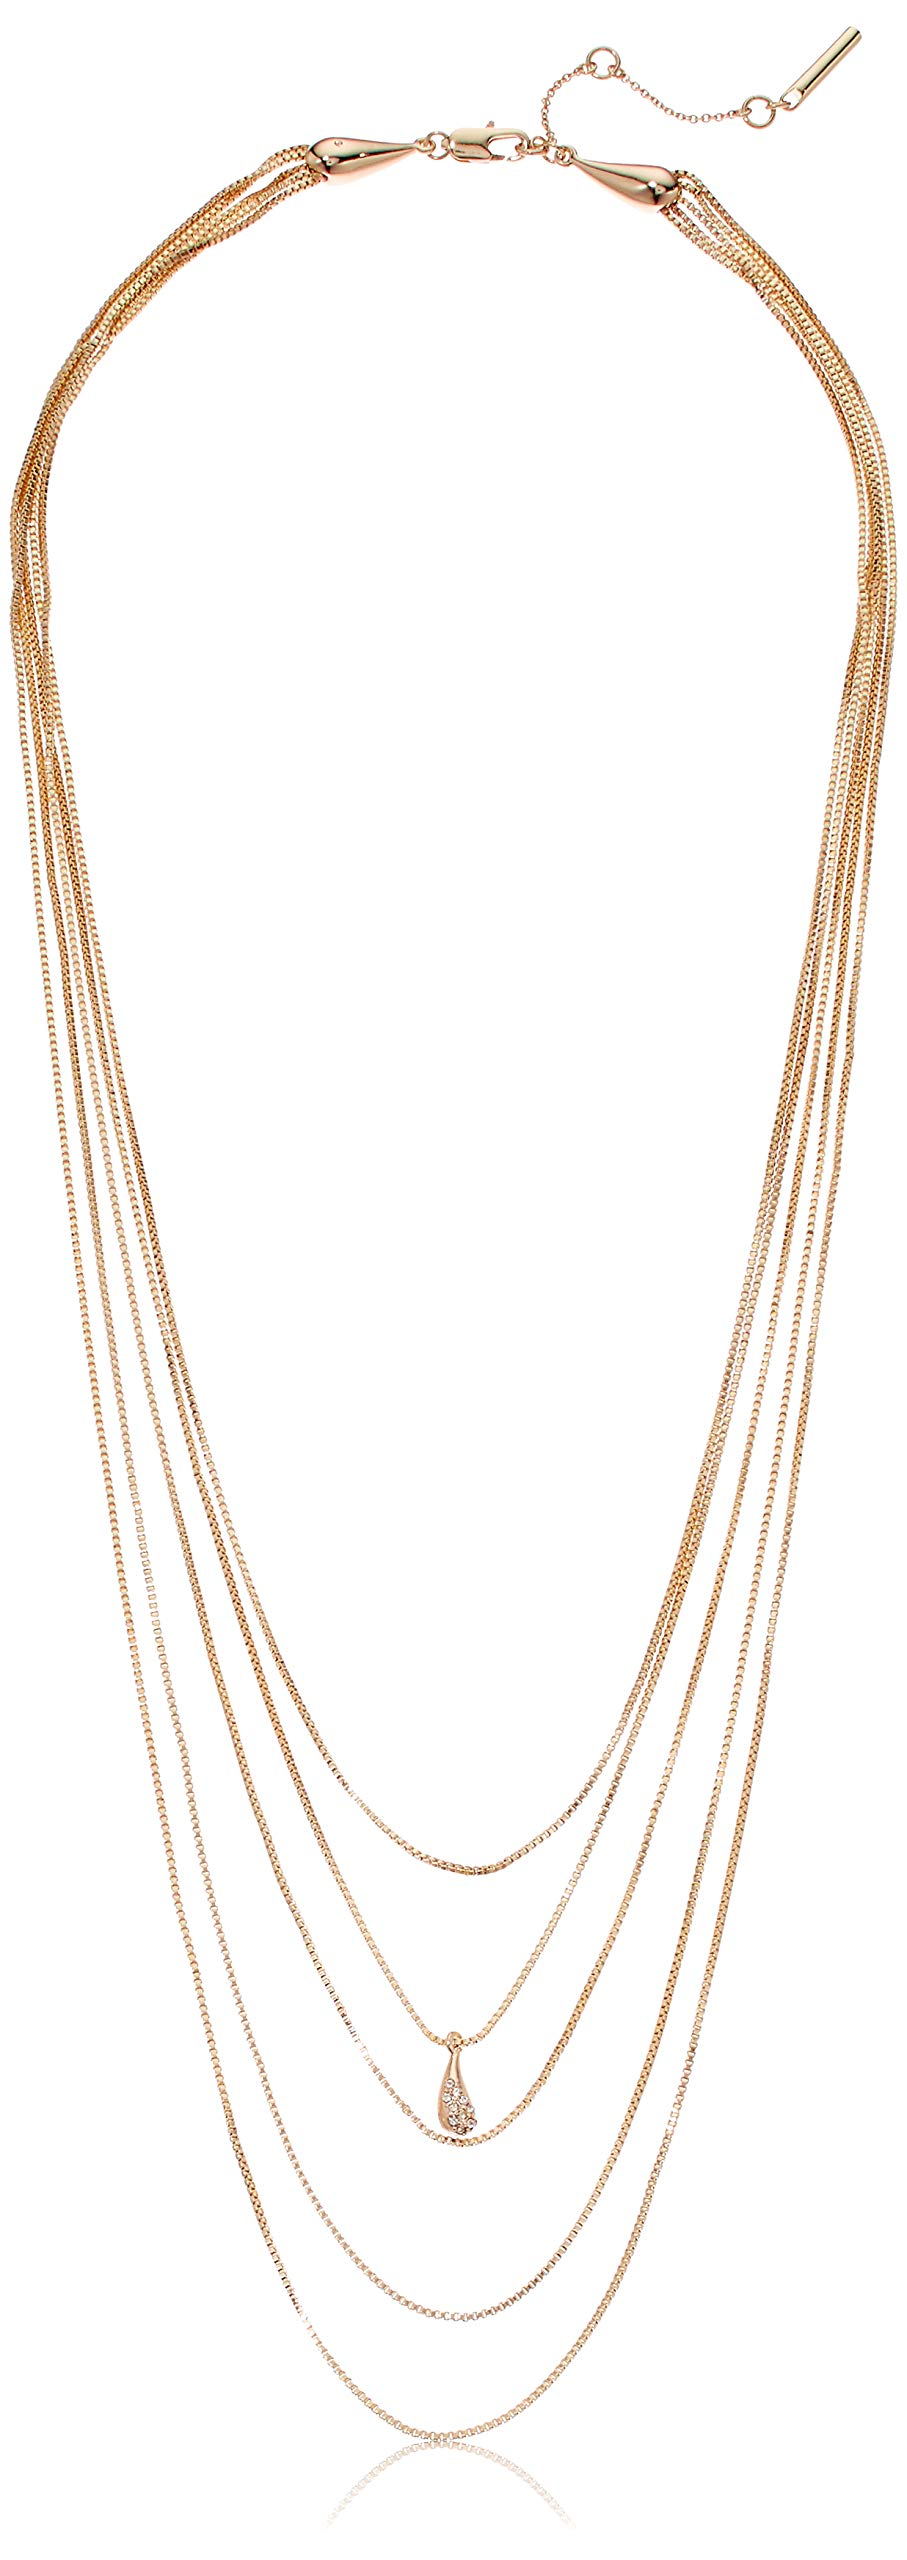 H Halston Women's Pave Teardrop Delicate Multi Row Necklace, Crystal, One Size